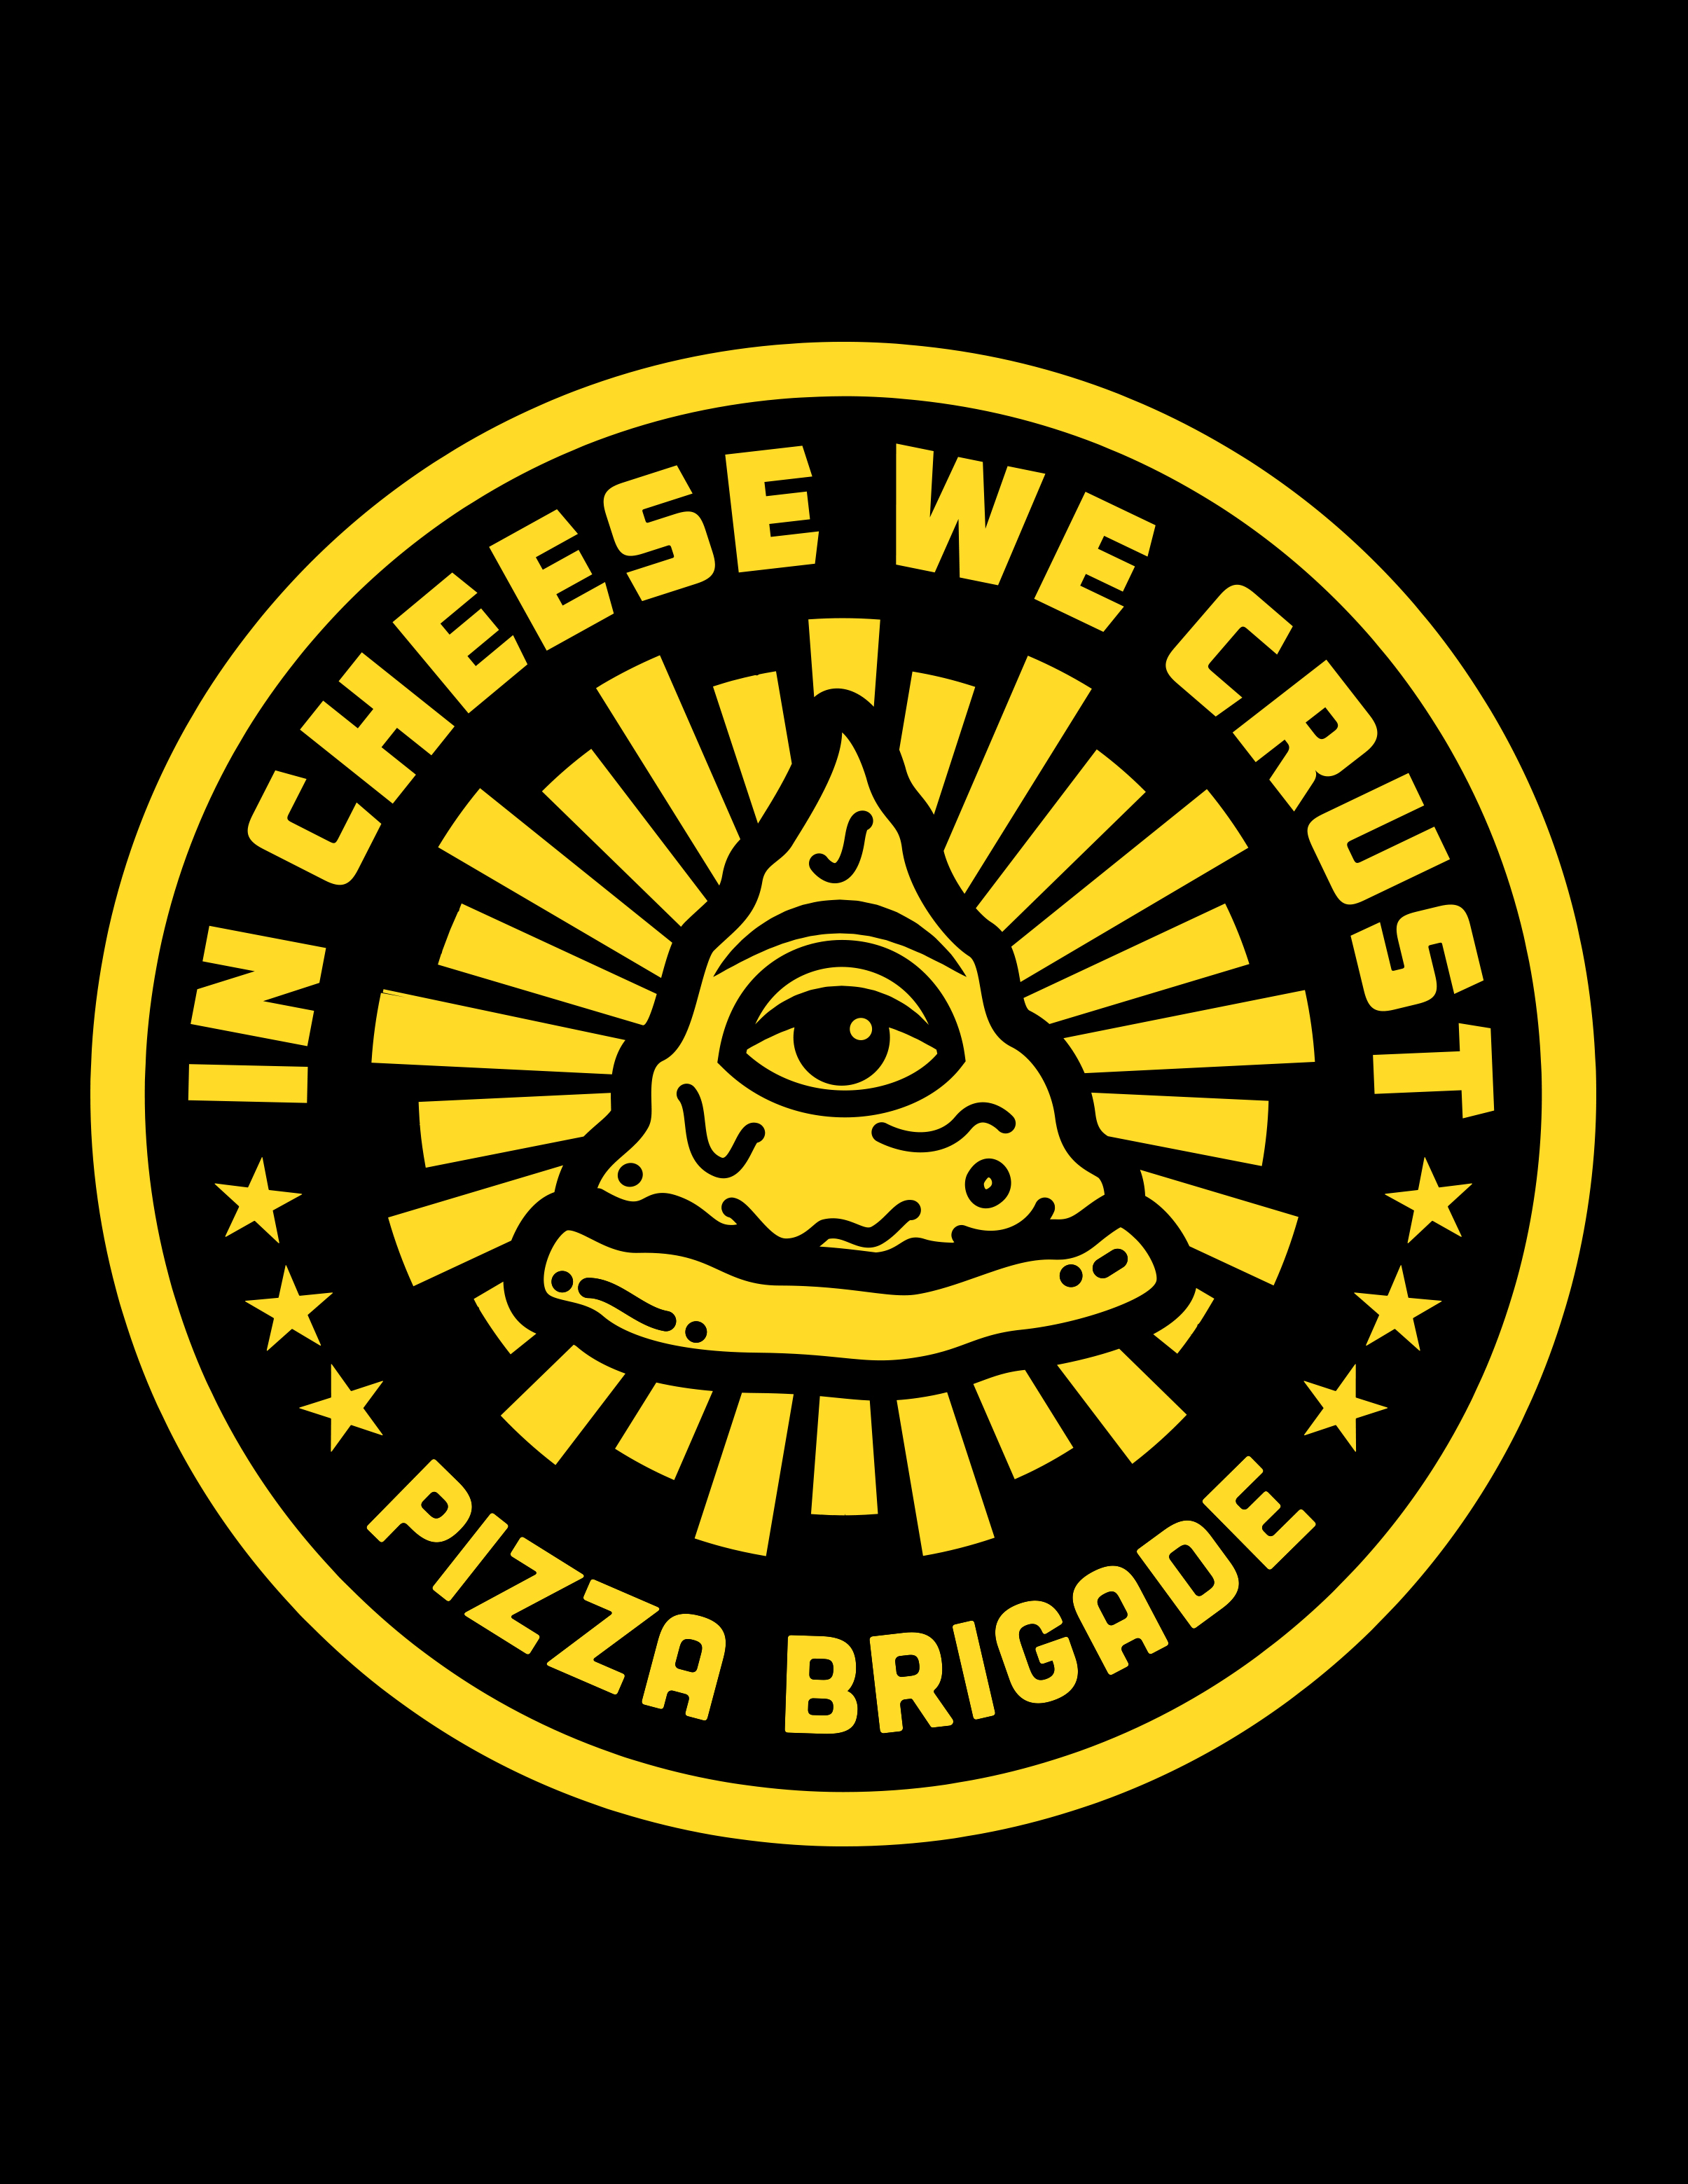 pizza brigade website in cheese we crust.jpg